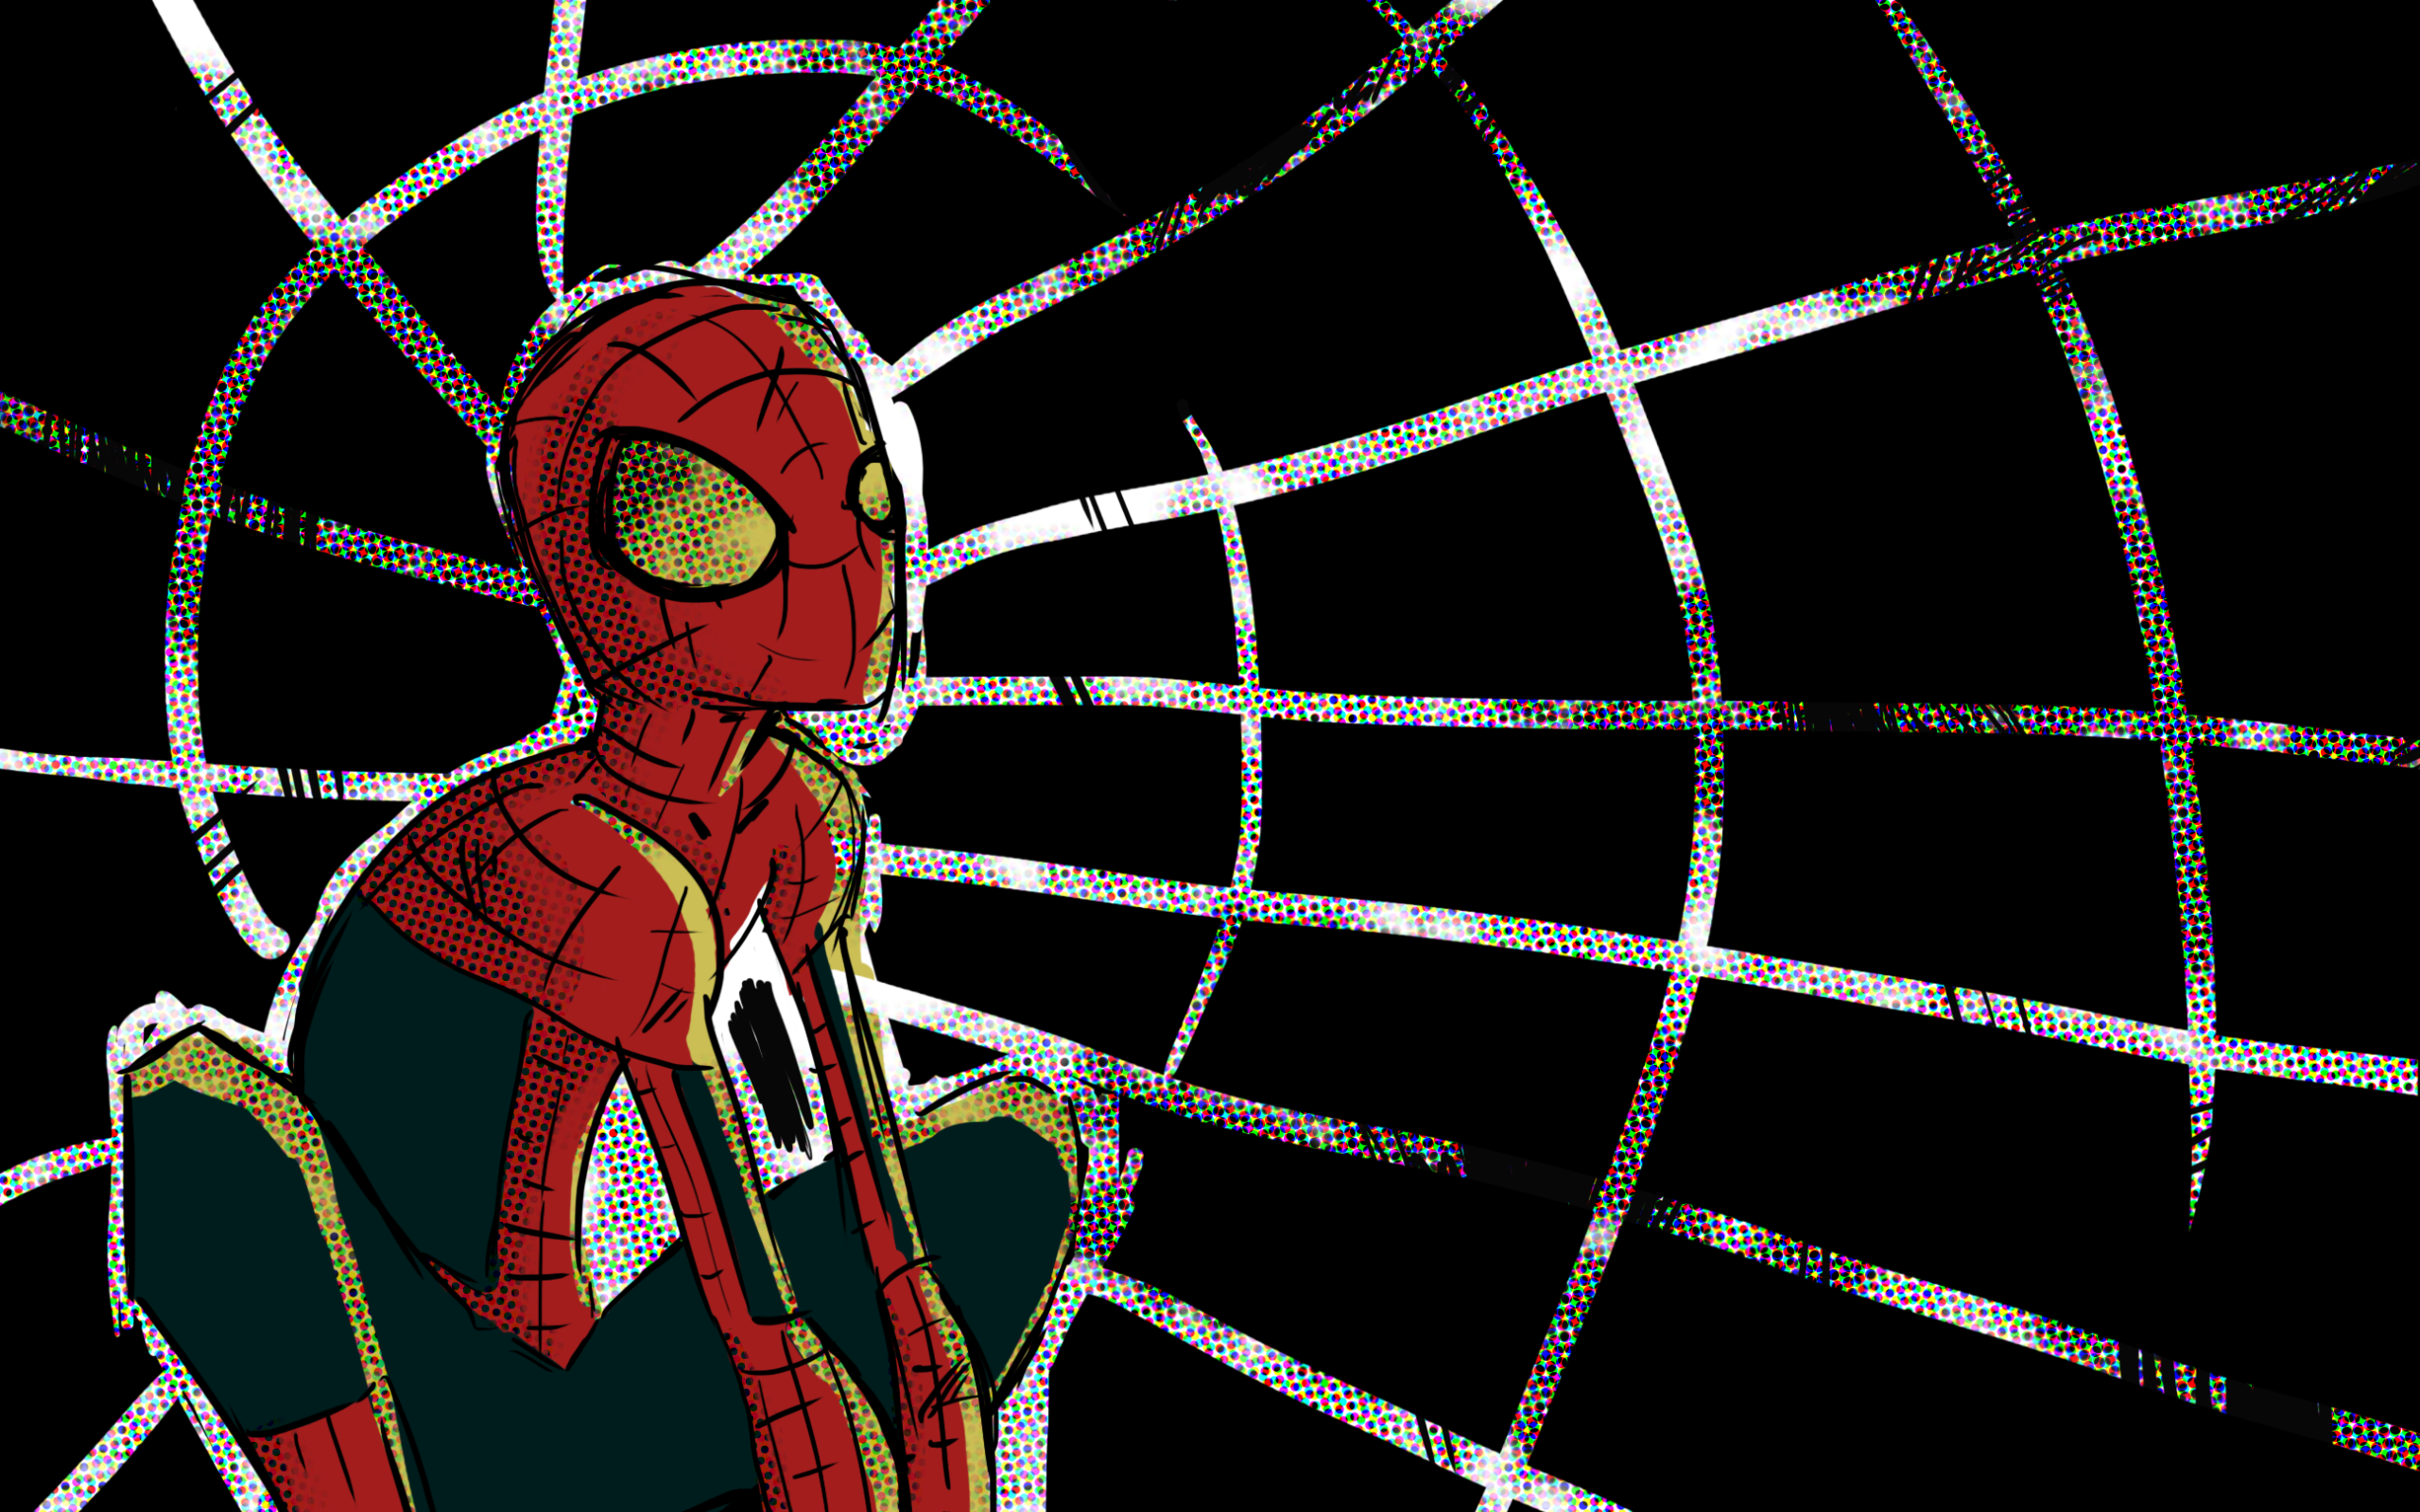 Spider Man Image Download: Spider-Man Full HD Wallpaper And Background Image